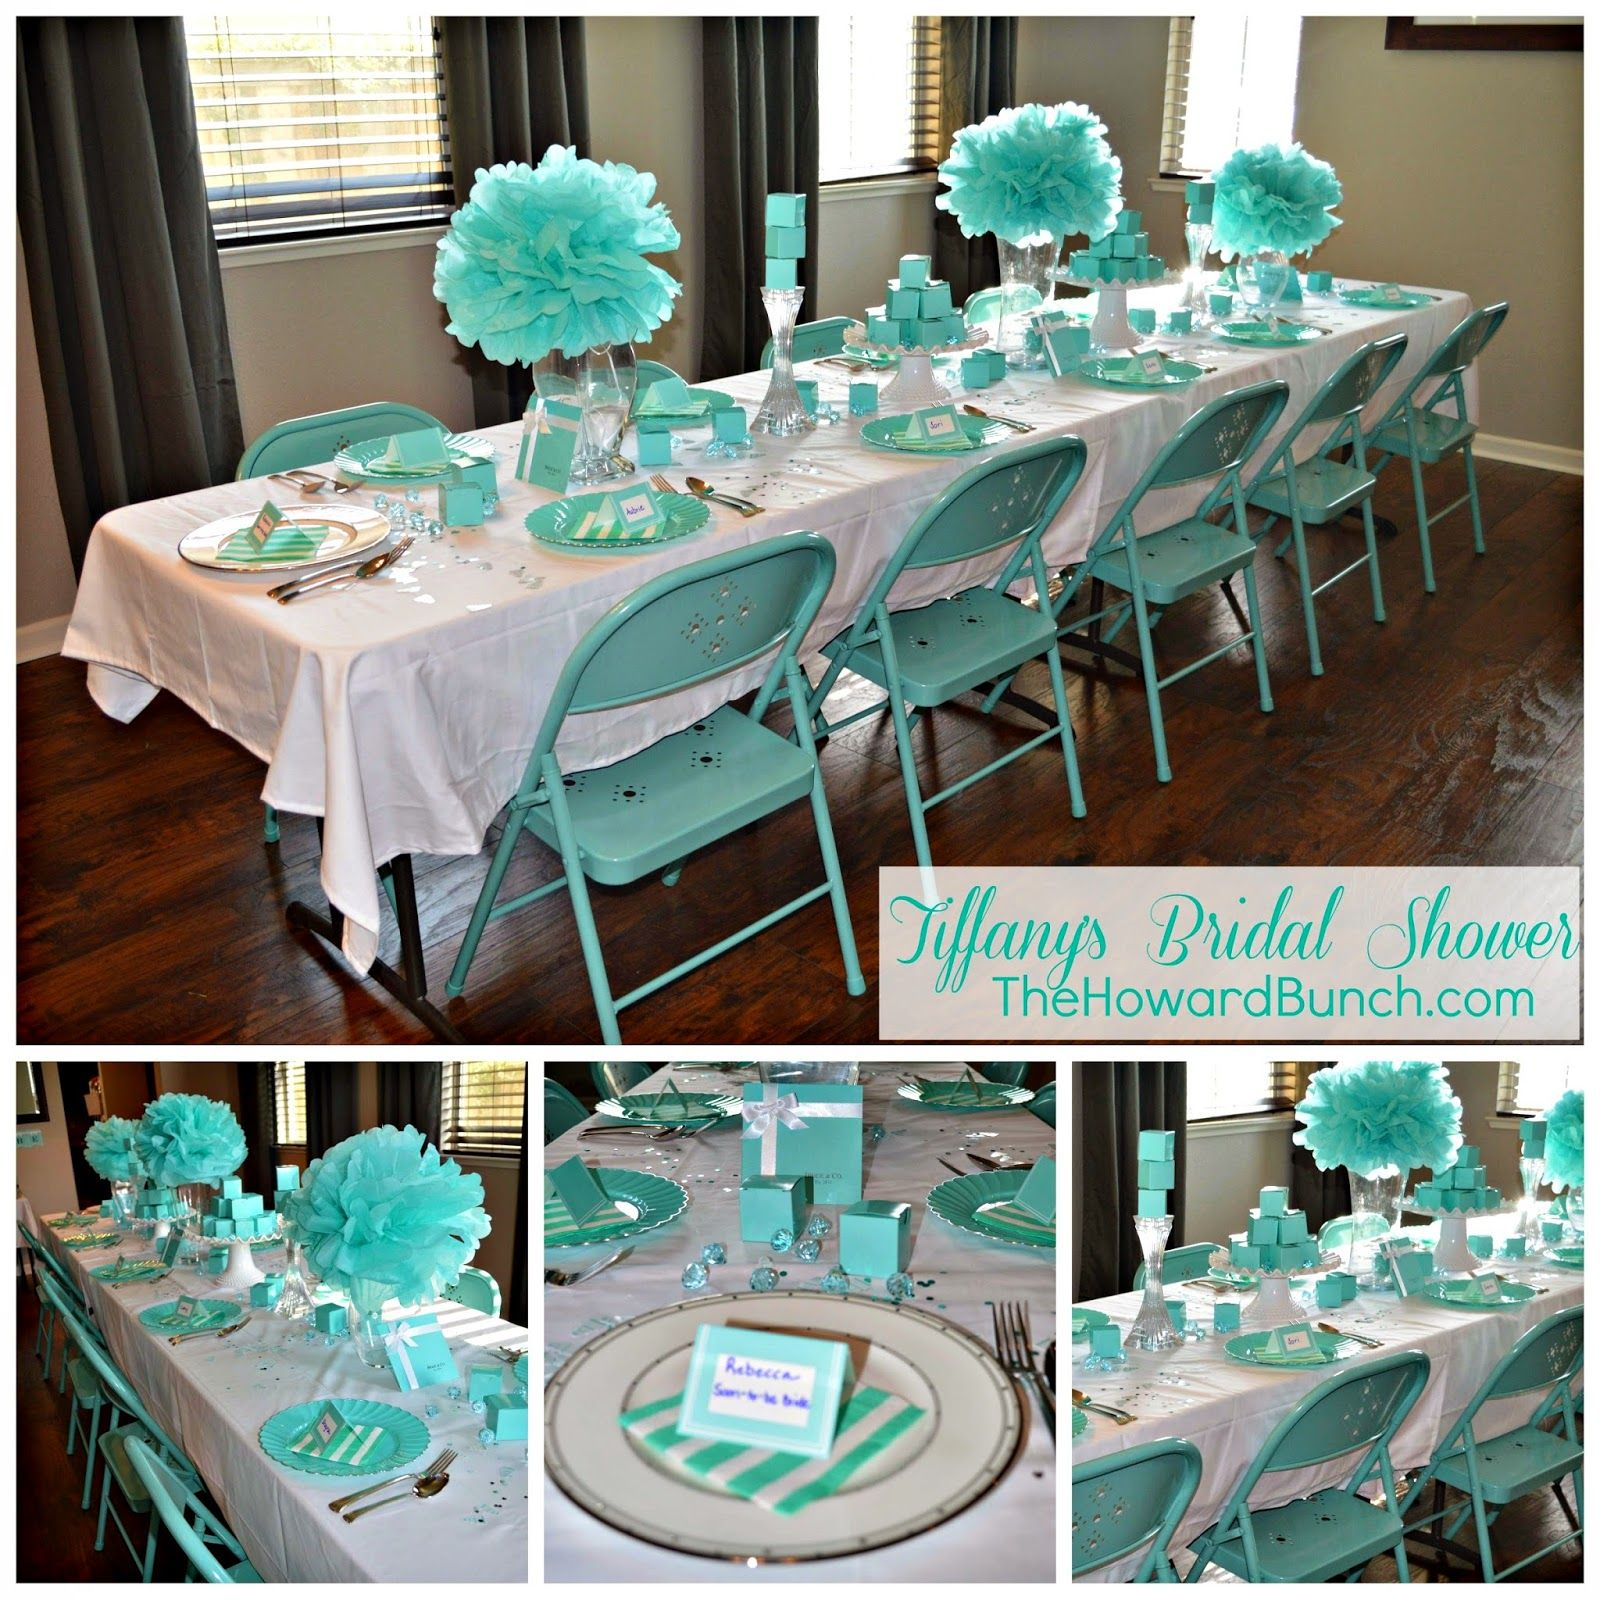 Tiffany Blue Wedding Decoration Ideas: The Howard Bunch: A Breakfast At Tiffany's Bridal Shower